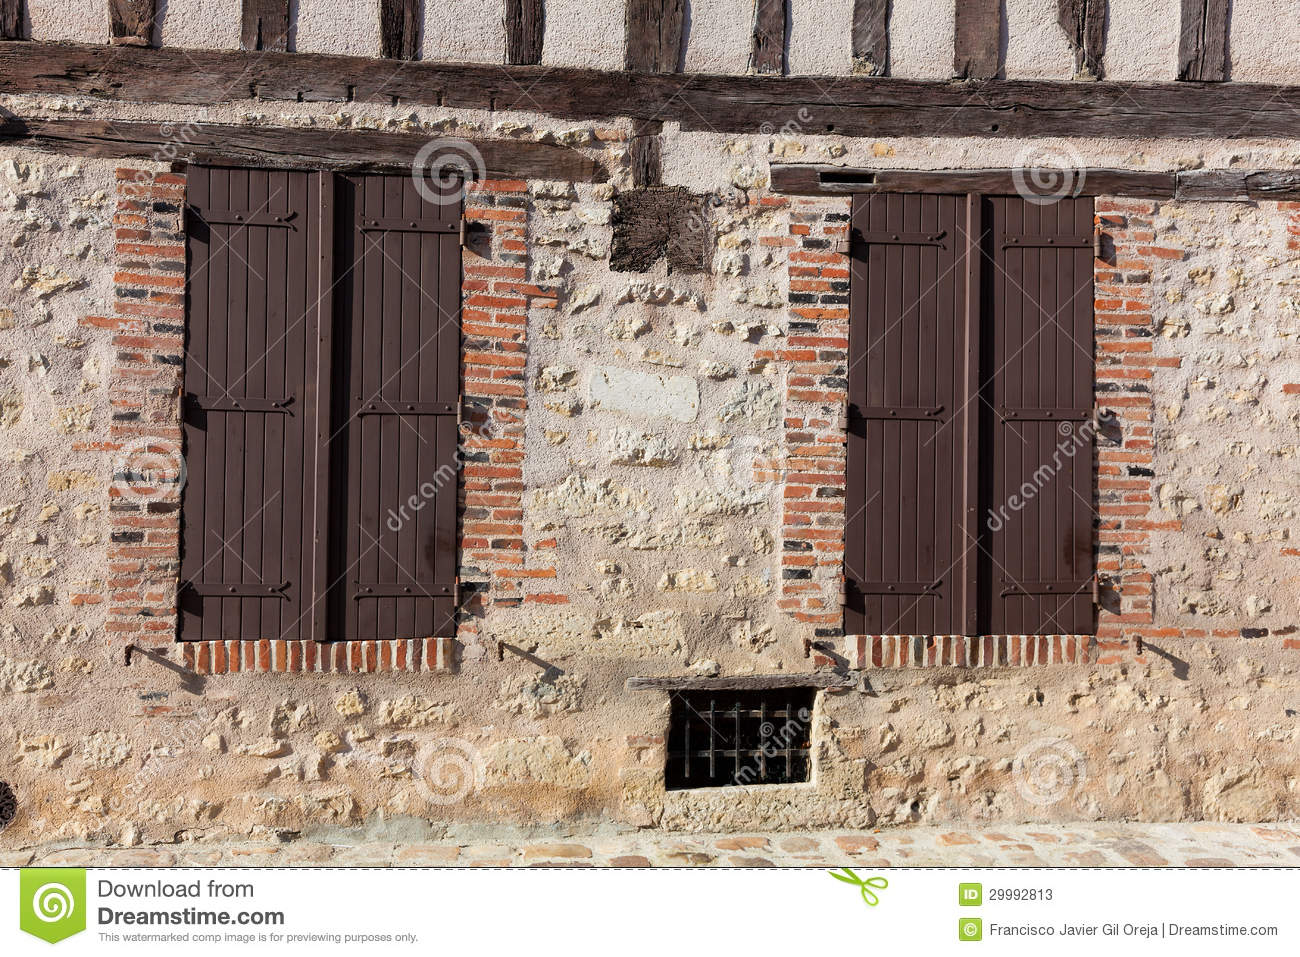 Architecture of provins stock photos image 29992813 - Vide greniers seine et marne ...